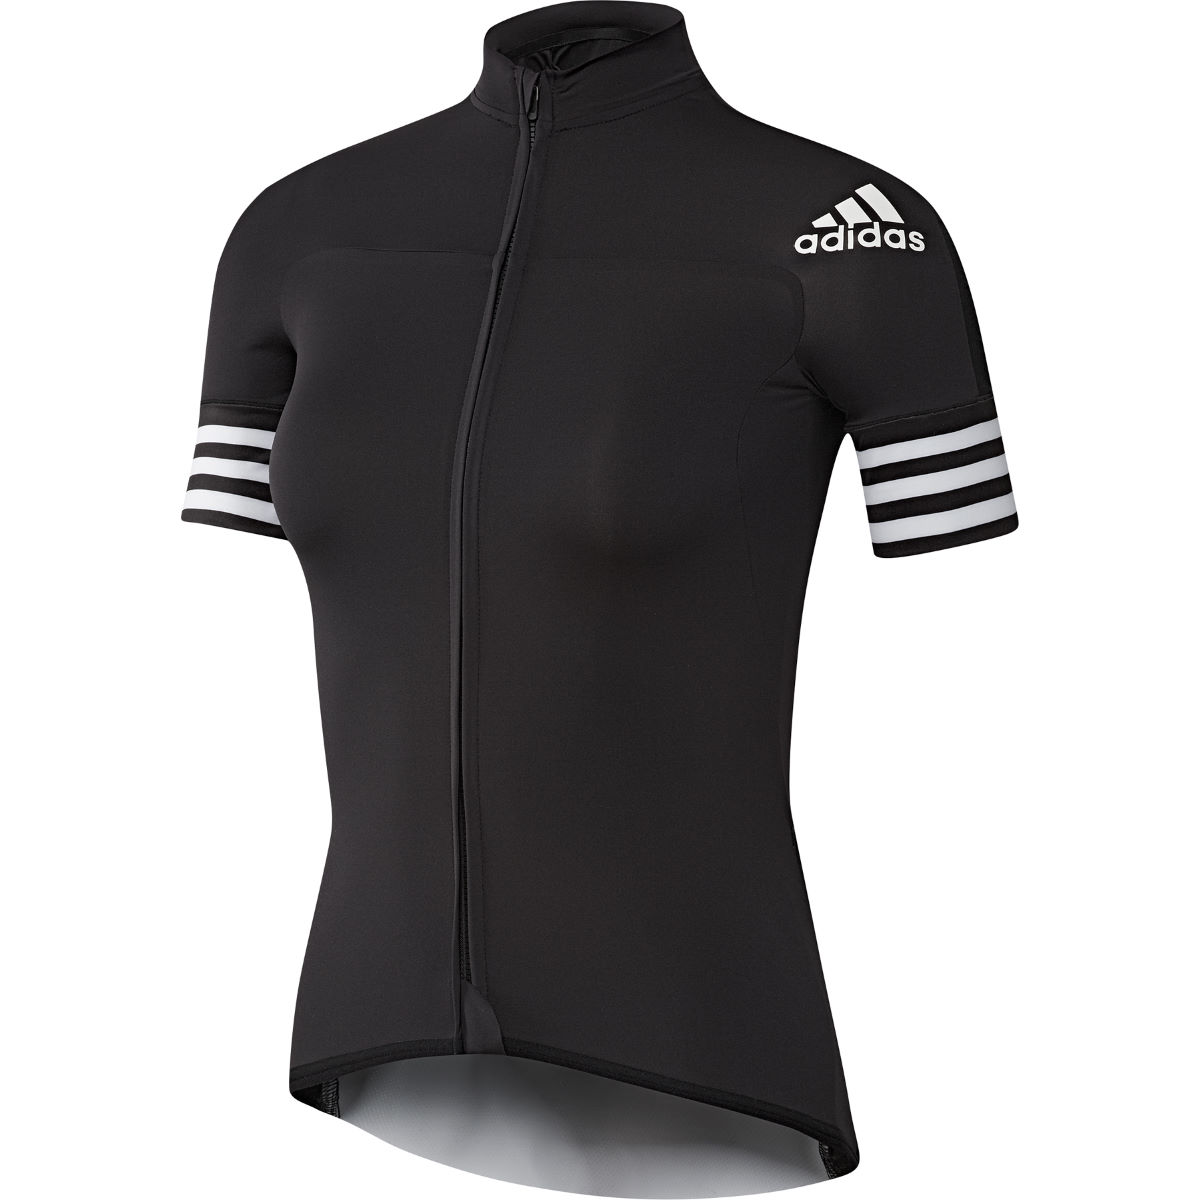 Maillot Femme Adidas Cycling Adizero (manches courtes) - XL Noir